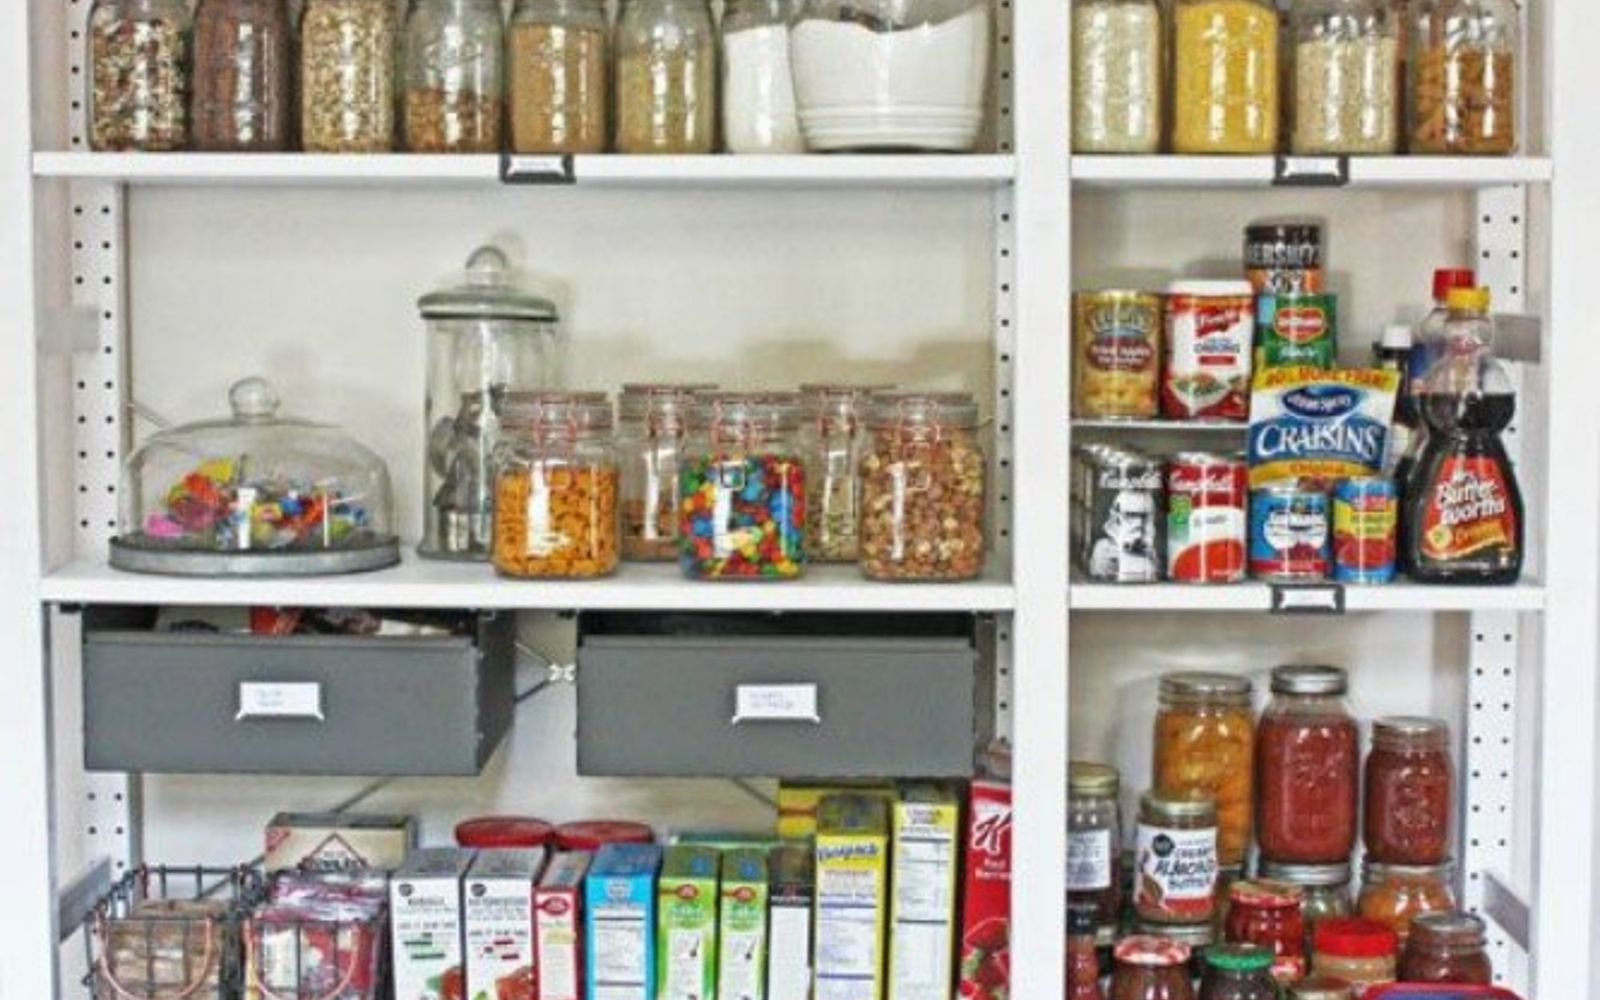 s 15 clever ways to add more kitchen storage space with open shelves, kitchen design, shelving ideas, storage ideas, See everything and keep it in order